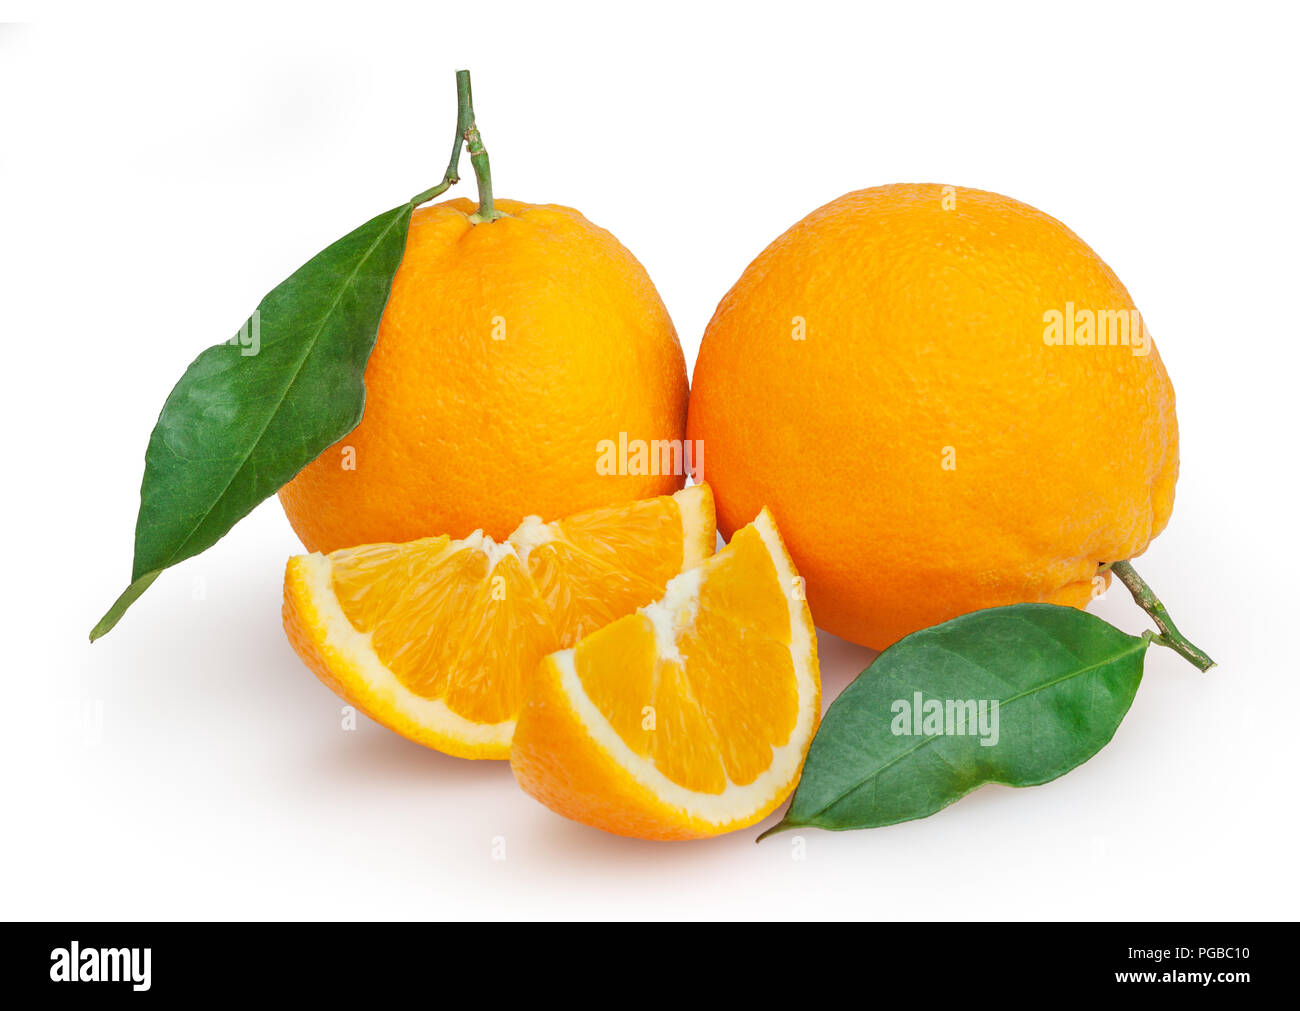 Oranges isolated on white background with clipping path - Stock Image